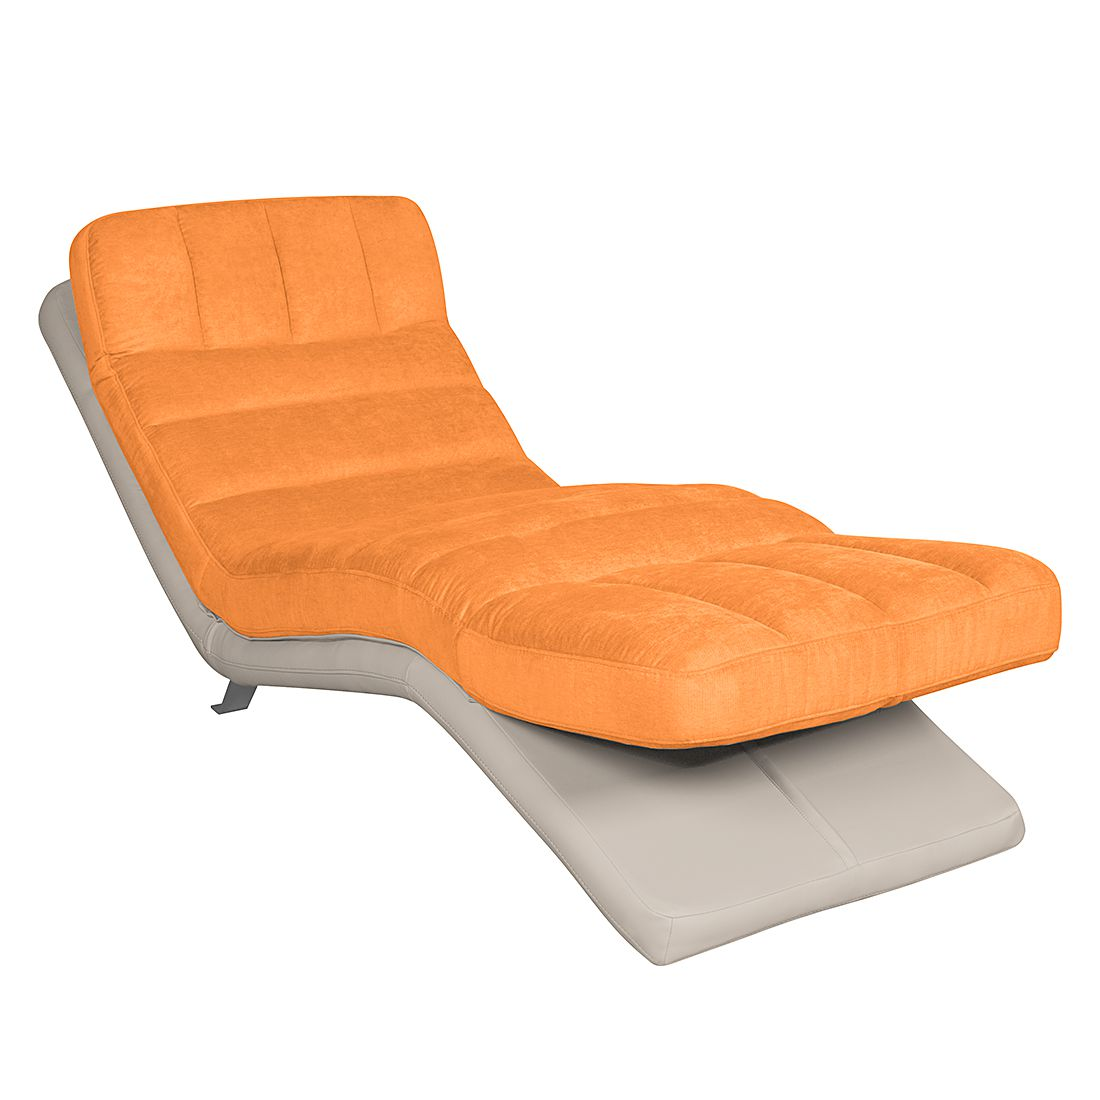 Relaxation guide d 39 achat for Recherche chaise longue